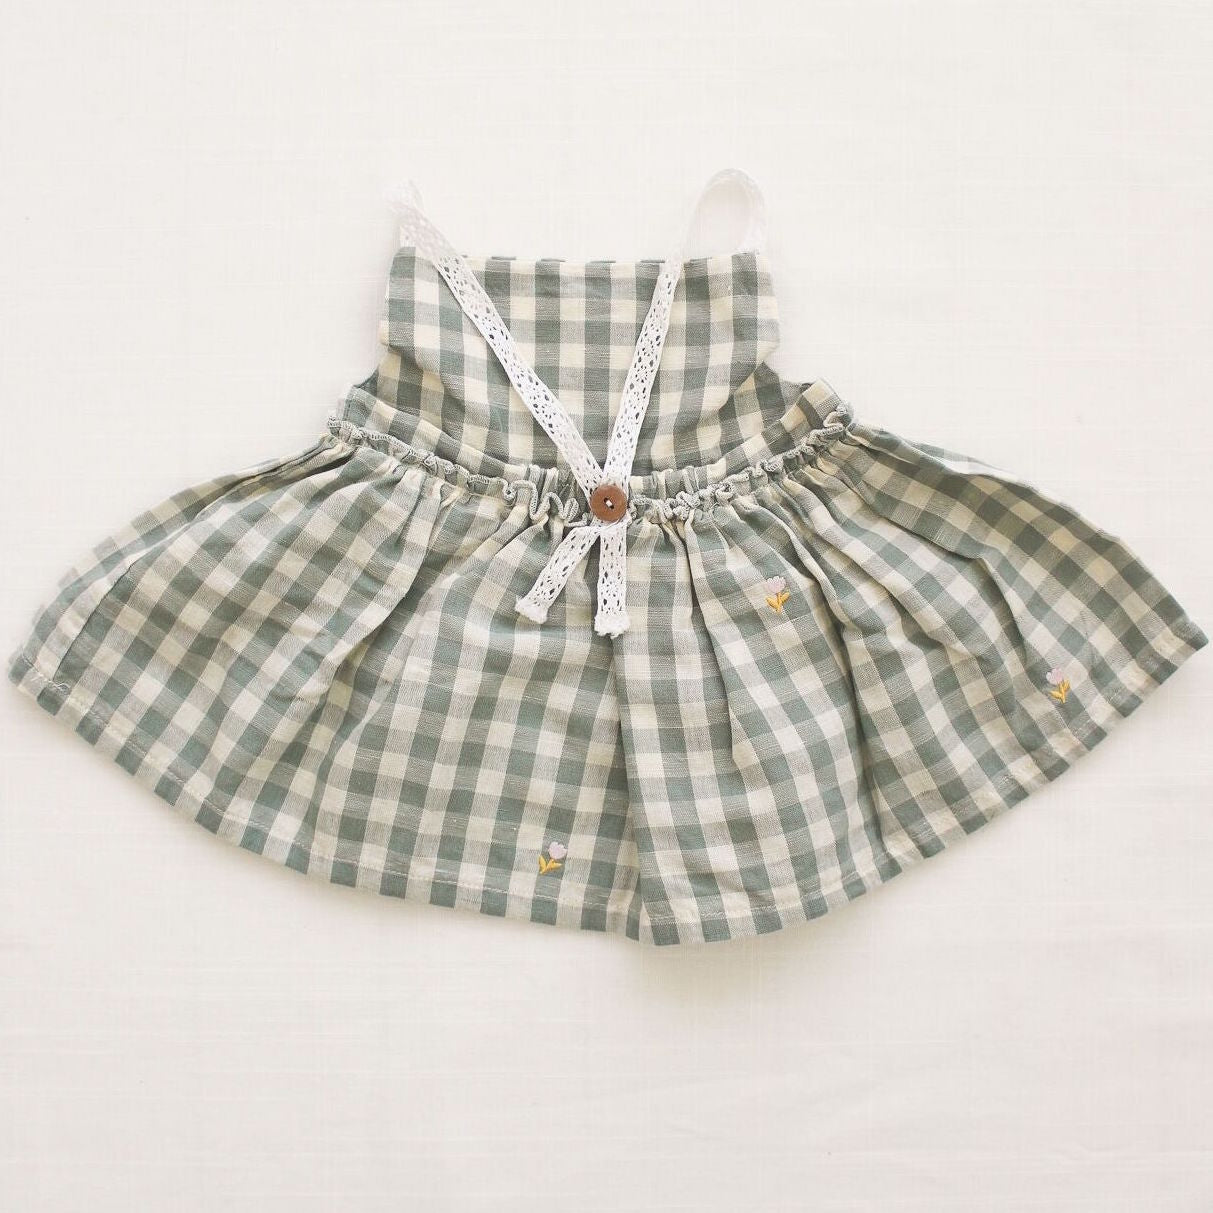 Fin and Vince picnic tunic - pistachio gingham - back